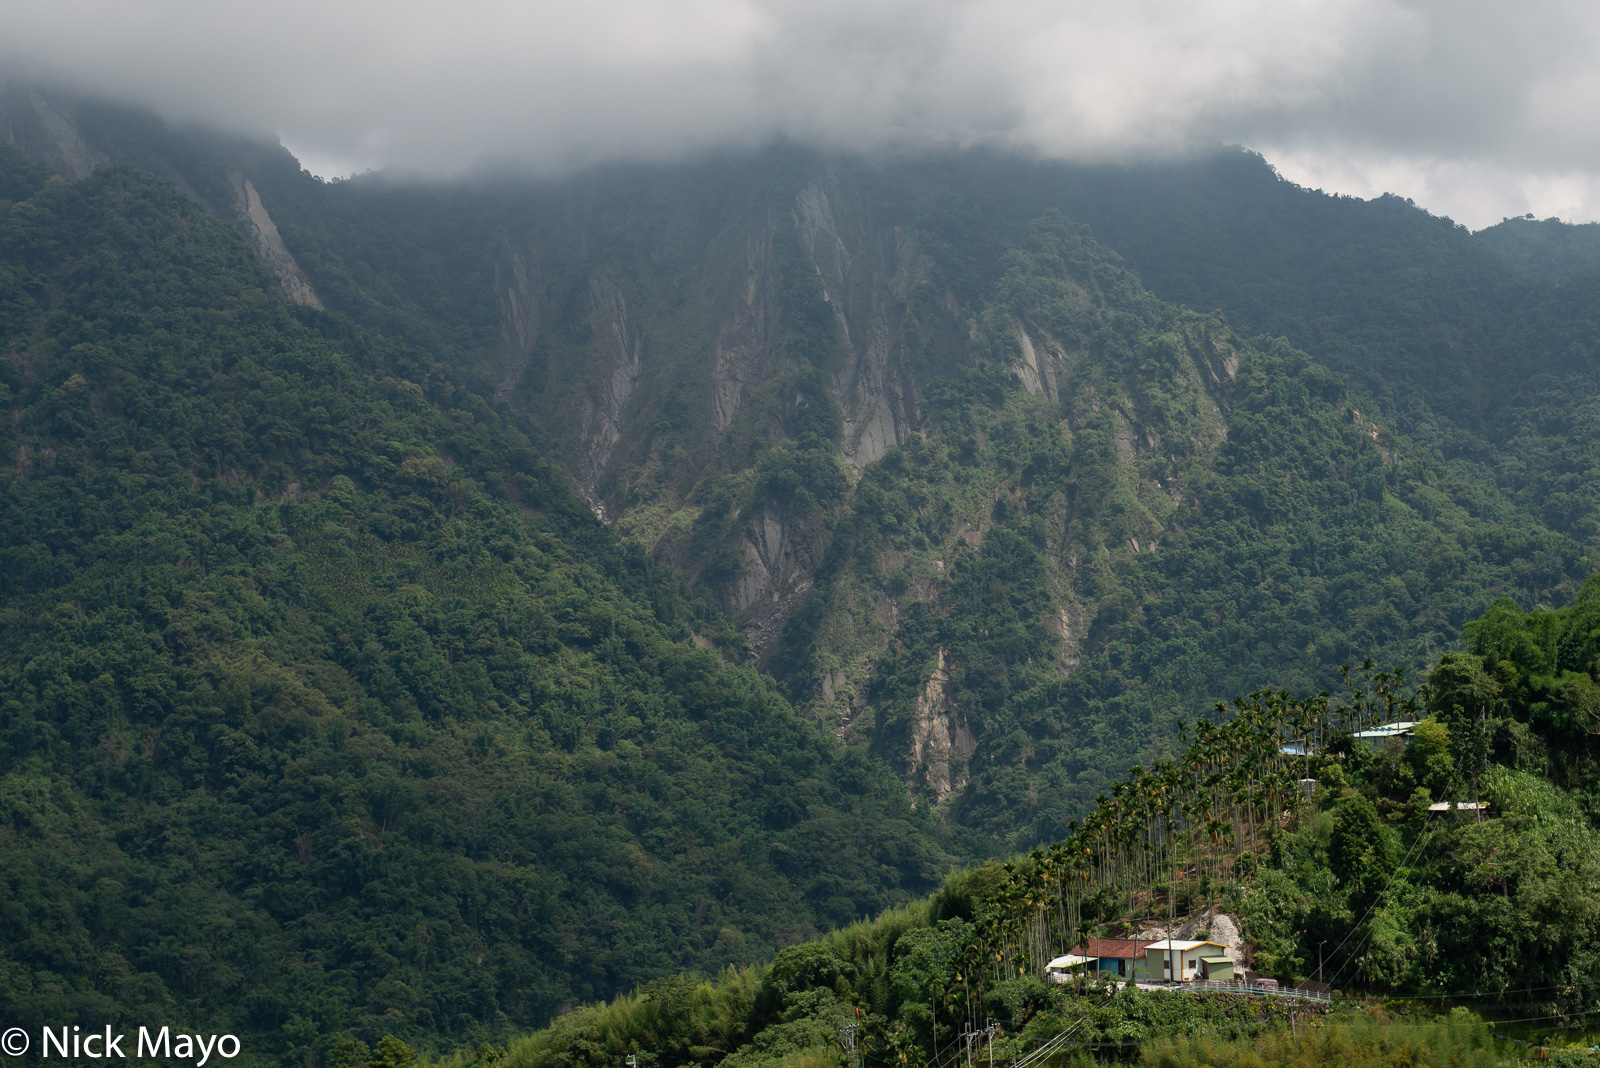 A farmhouse and betel trees on a mountainside in the Dahu district of Chiayi County.